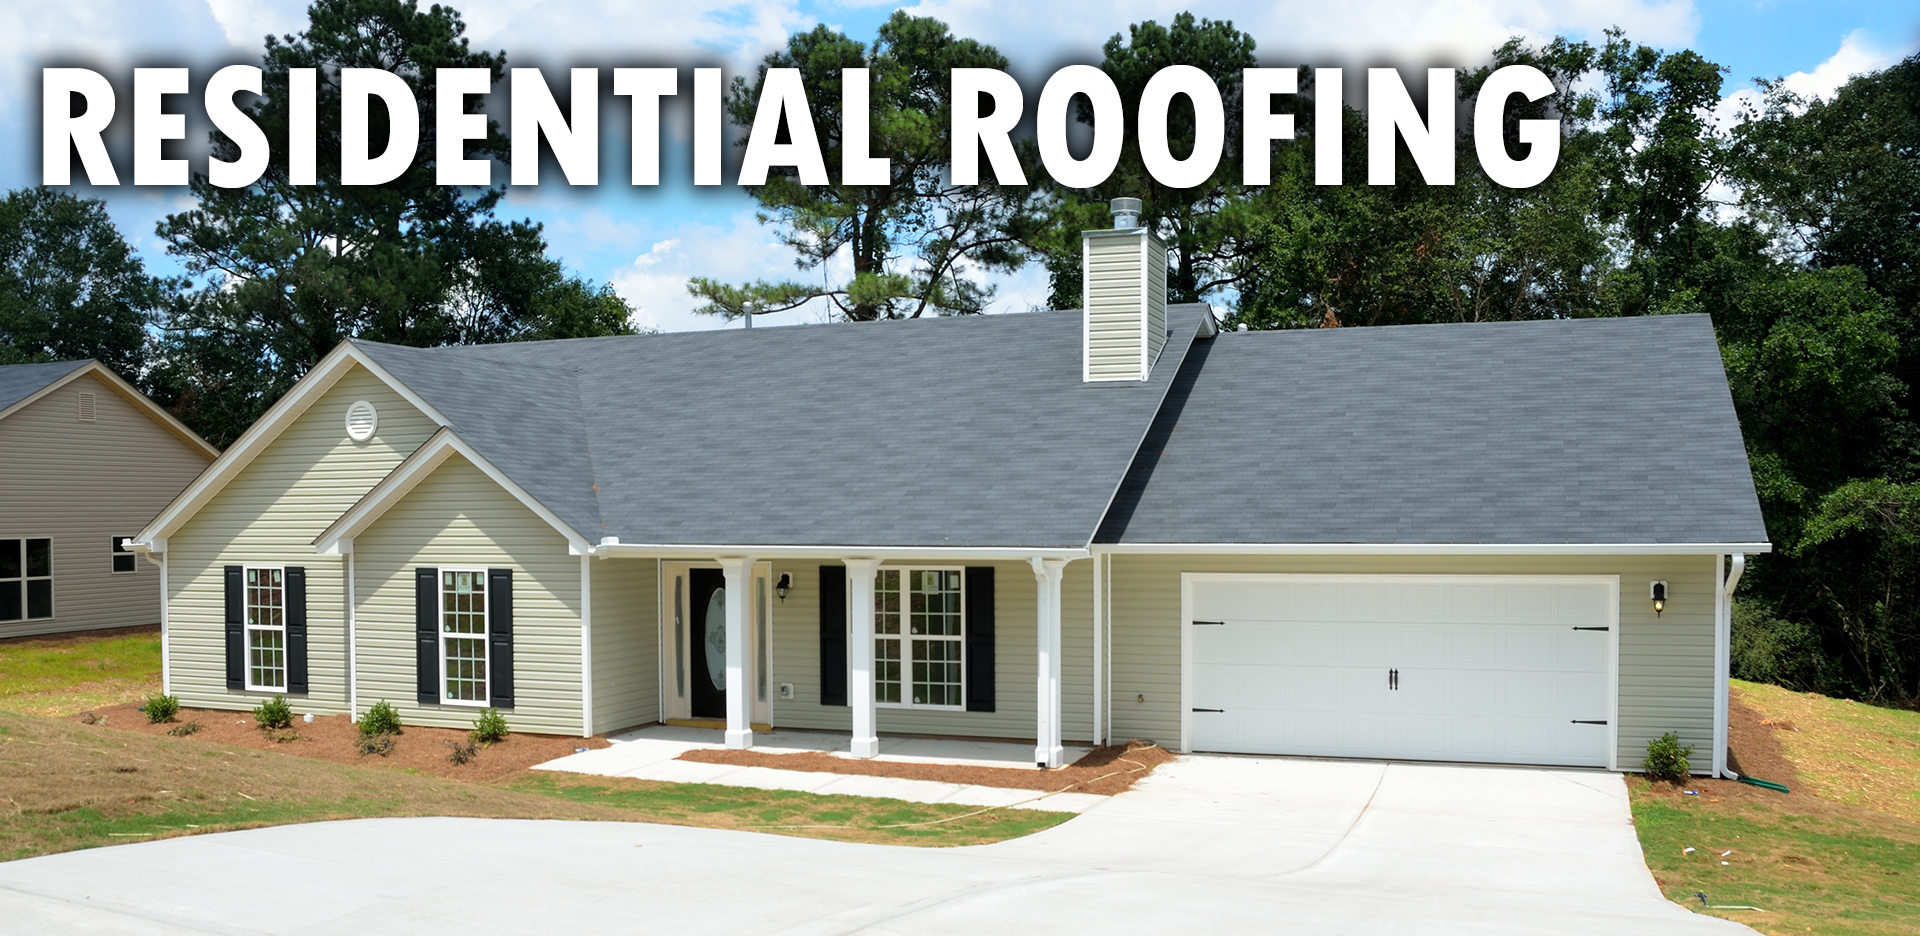 Copy of Residential Roofing